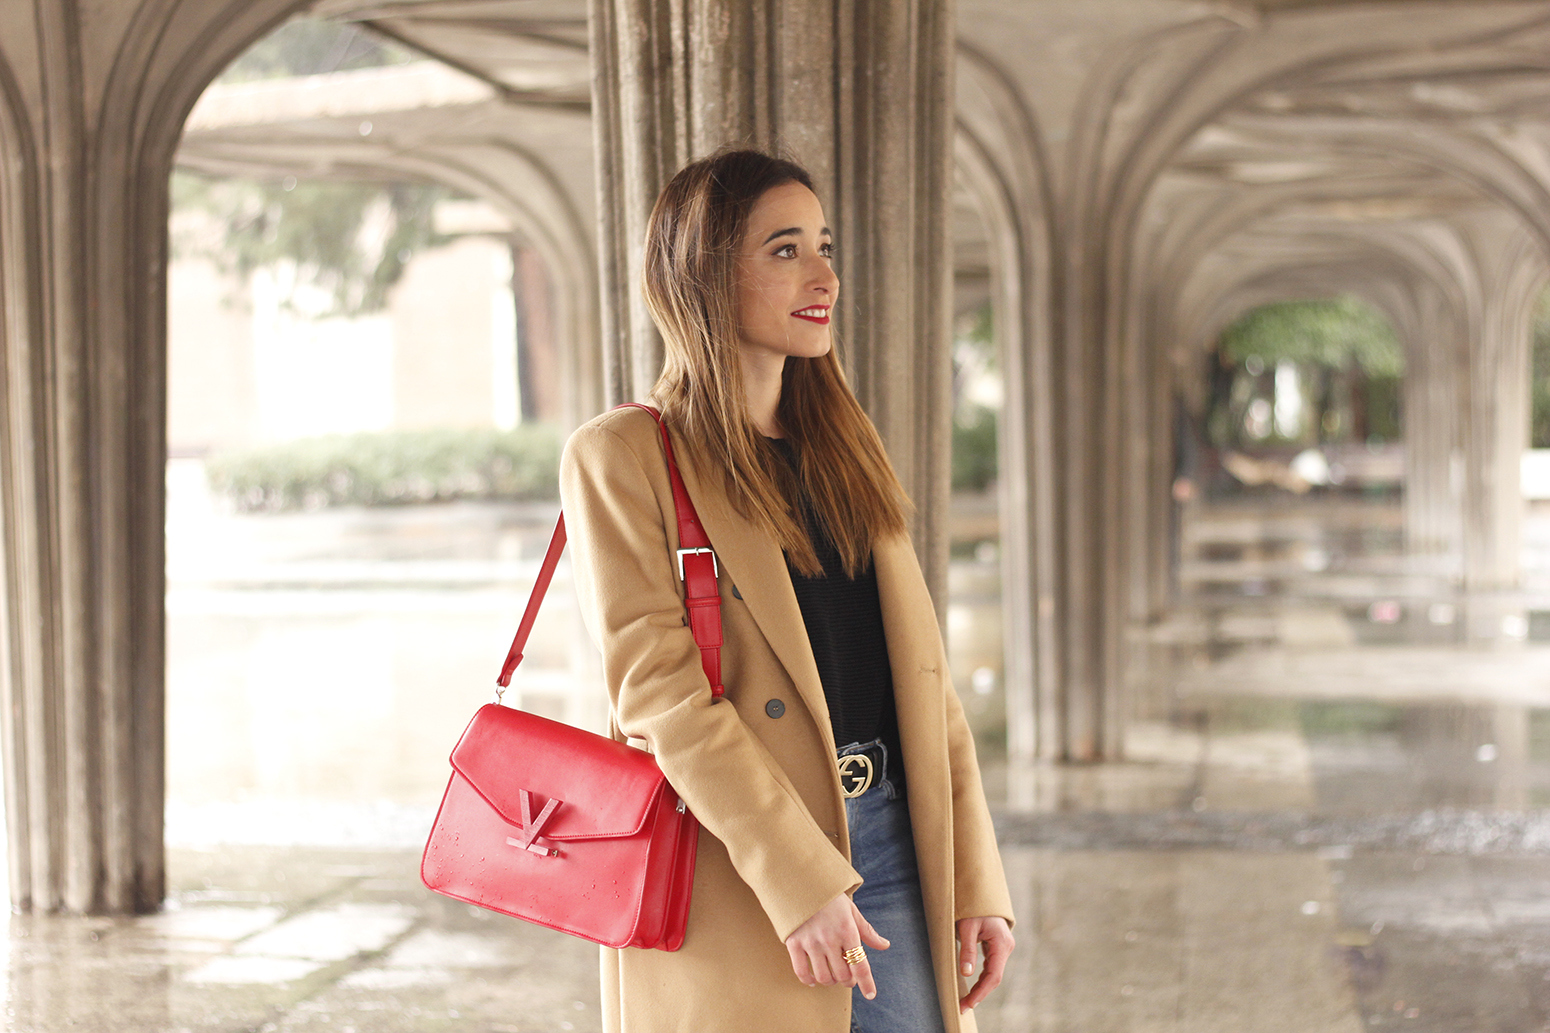 camel coat red valentinobags black outfit winter style fashion12